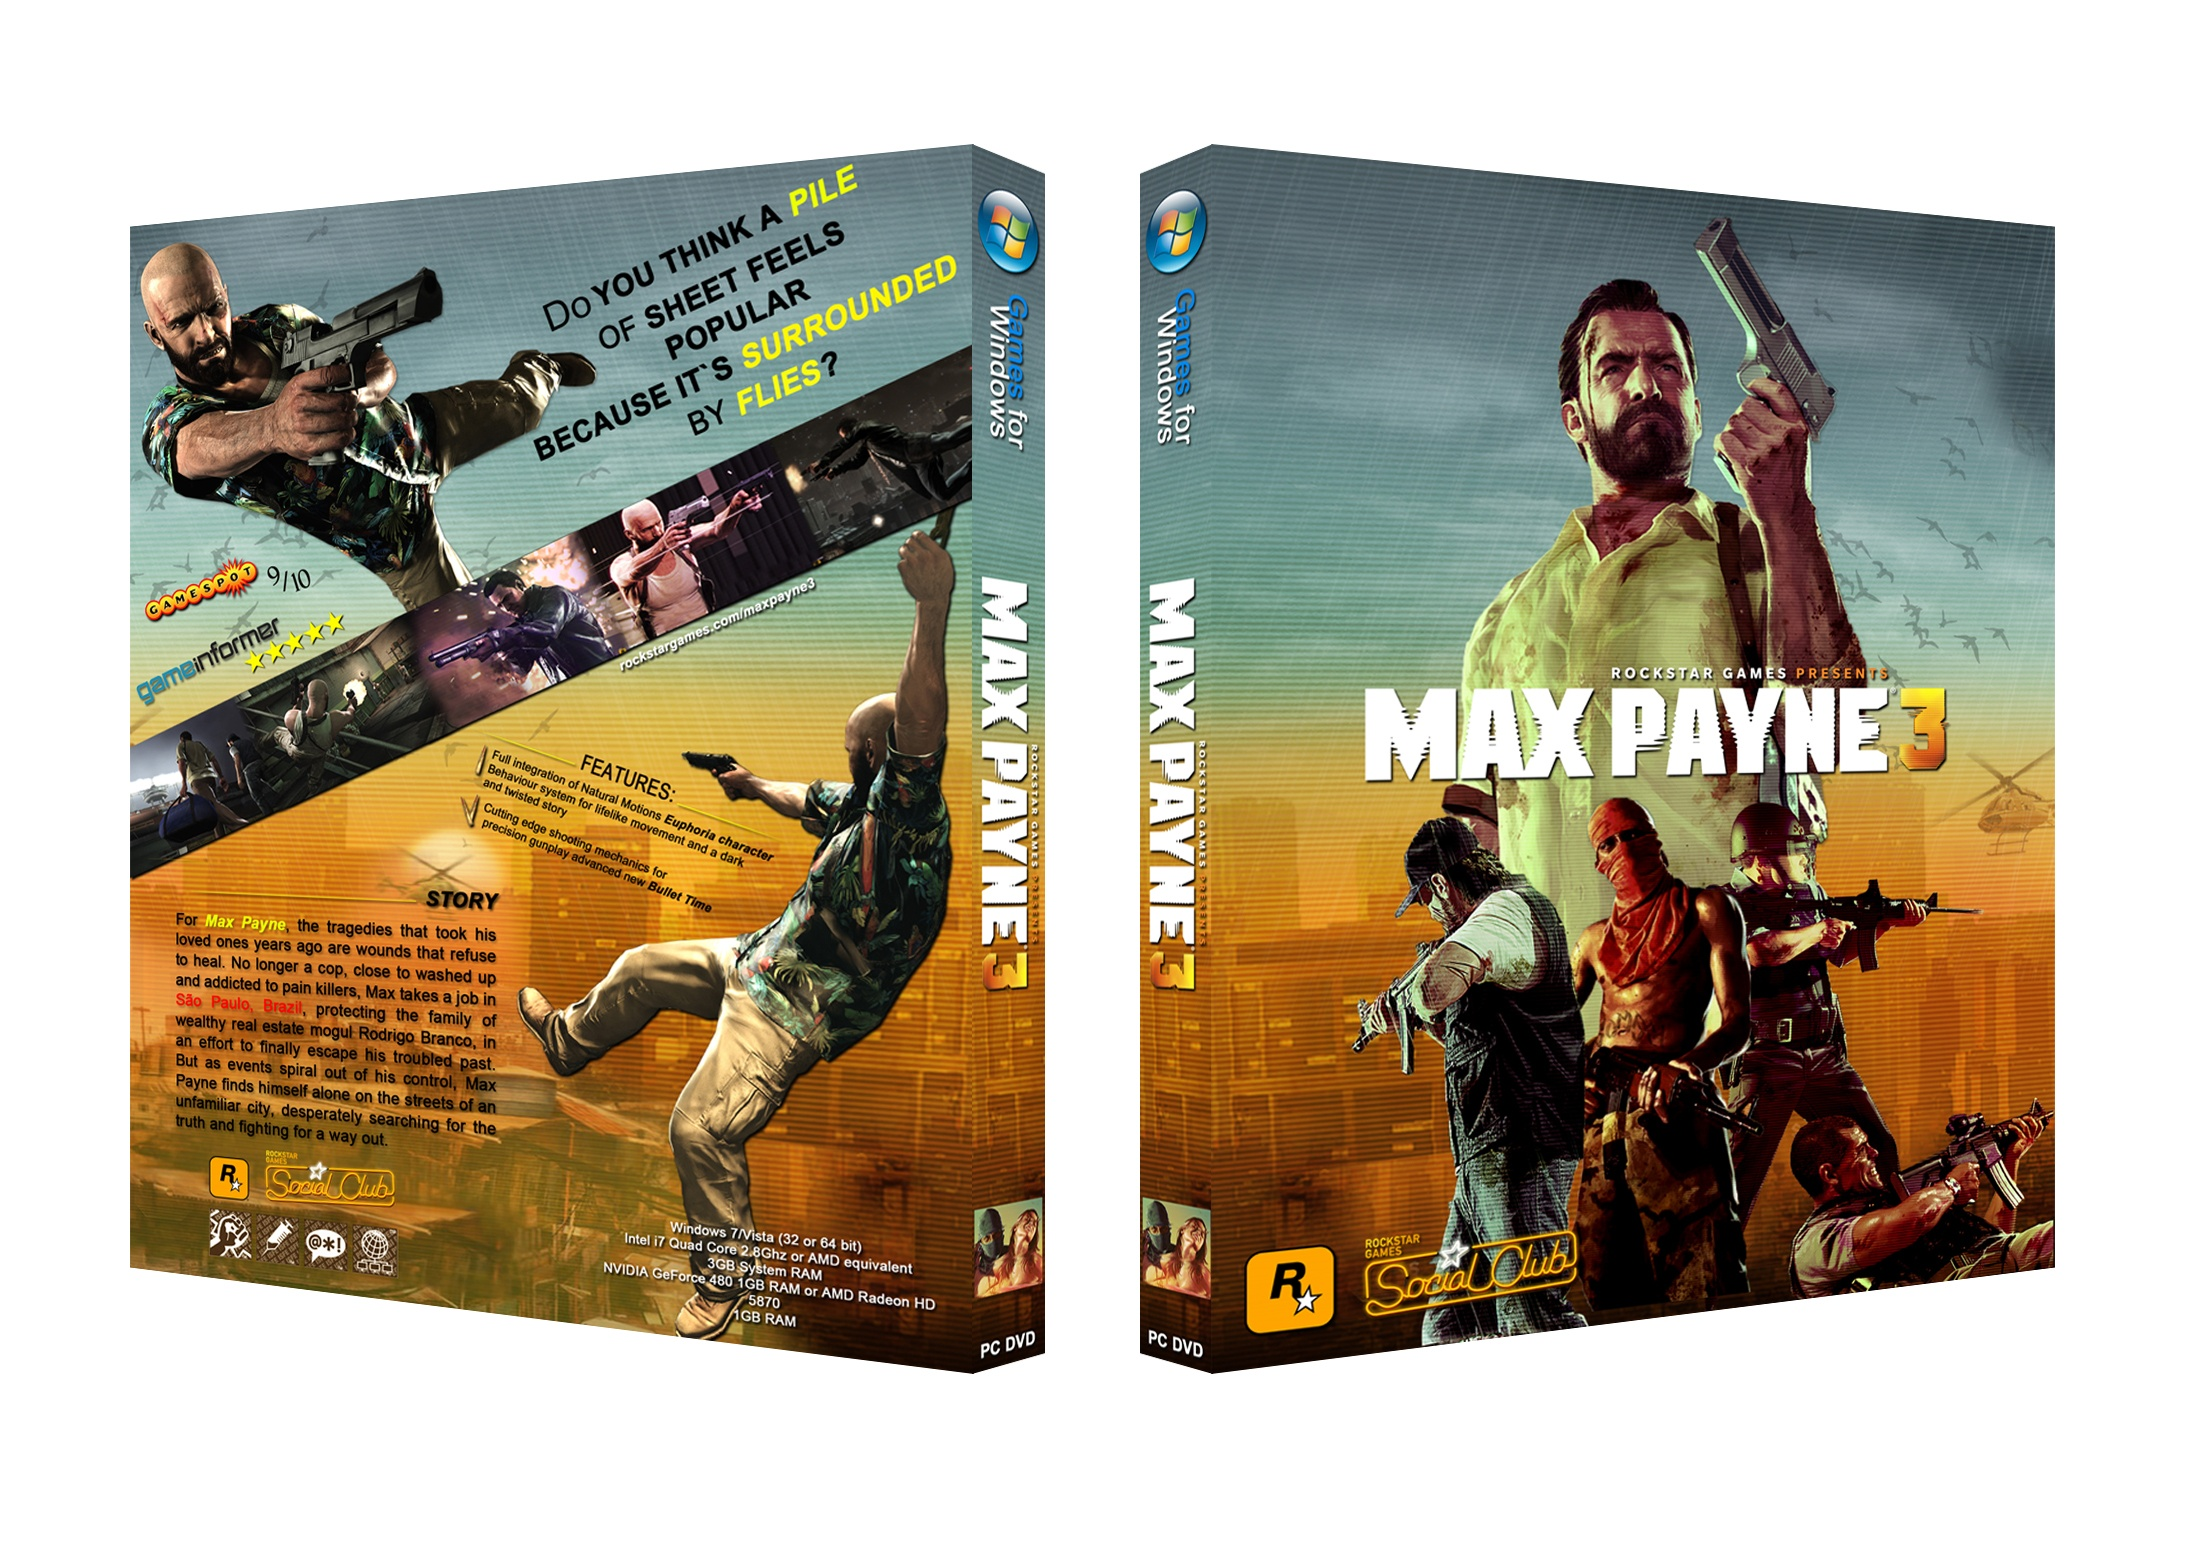 Max Payne 3 box cover